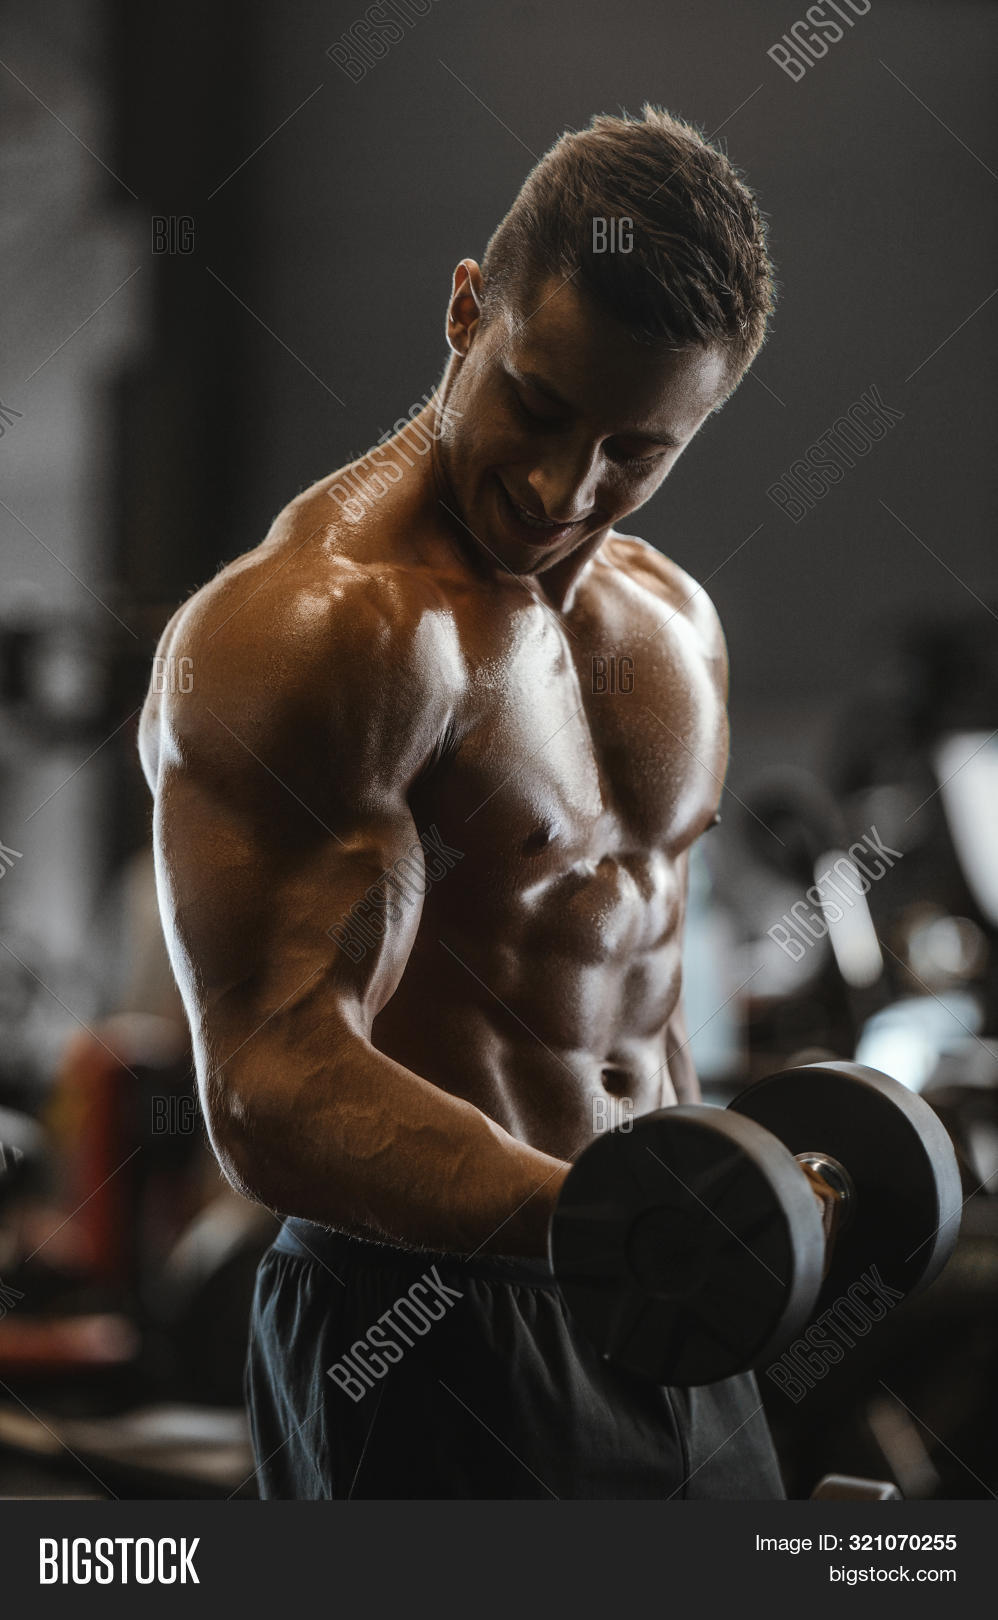 abs,active,arms,athlete,back,bar,biceps,body,bodybuilder,bodybuilding,brutal,care,caucasian,chest,coach,competitor,cross,determination,dumbbell,energy,exercising,fit,fitness,force,gym,handsome,health,heavy,instructor,lifting,male,men,muscle,muscular,out,physique,power,sexy,shape,shoulder,sport,sportsman,steroids,strength,torso,training,triceps,wellness,work,workout